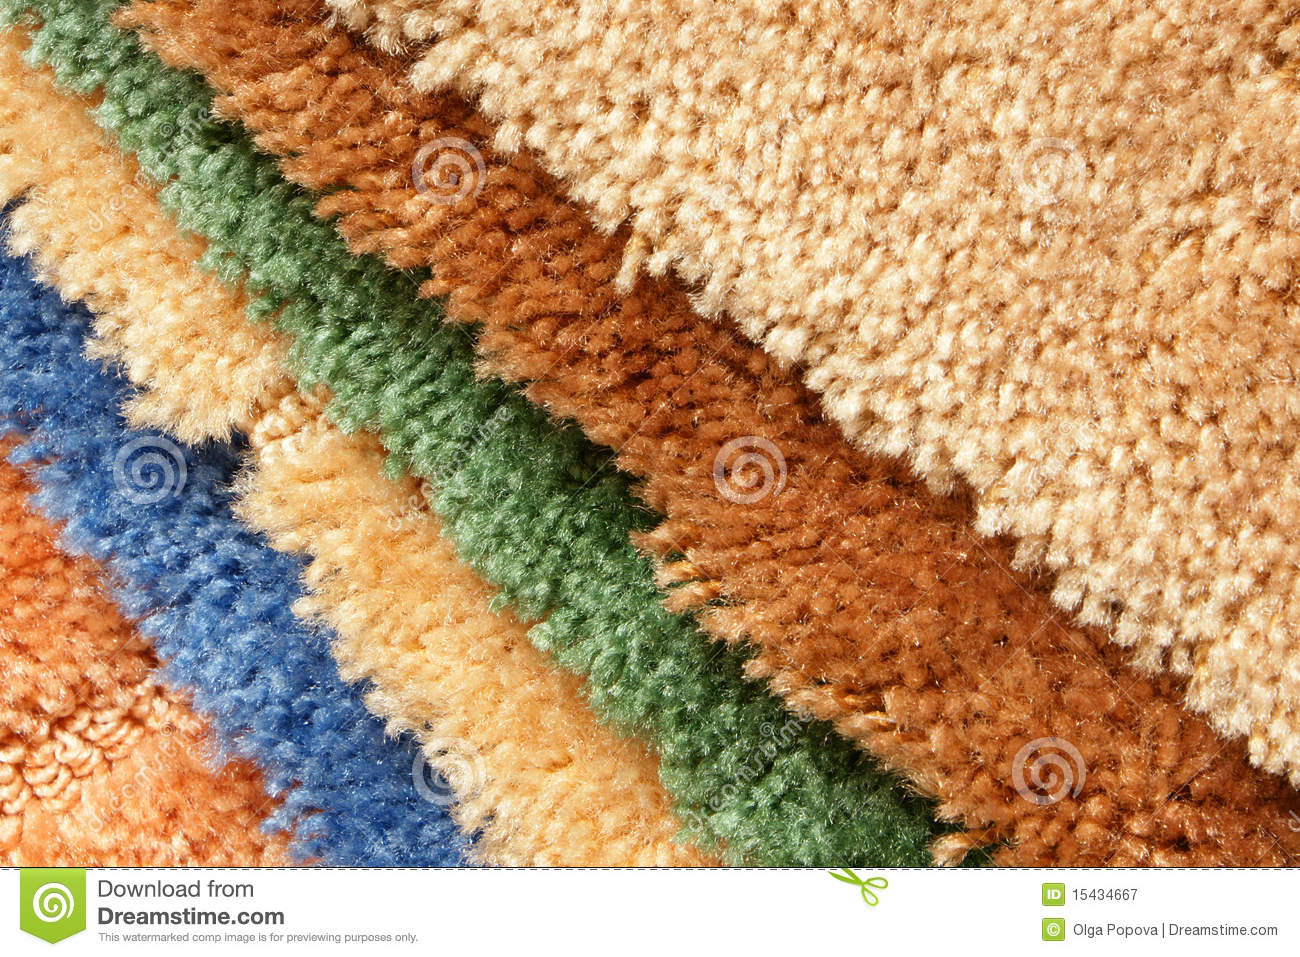 Samples Of Collection Carpet Stock Image - Image of blue